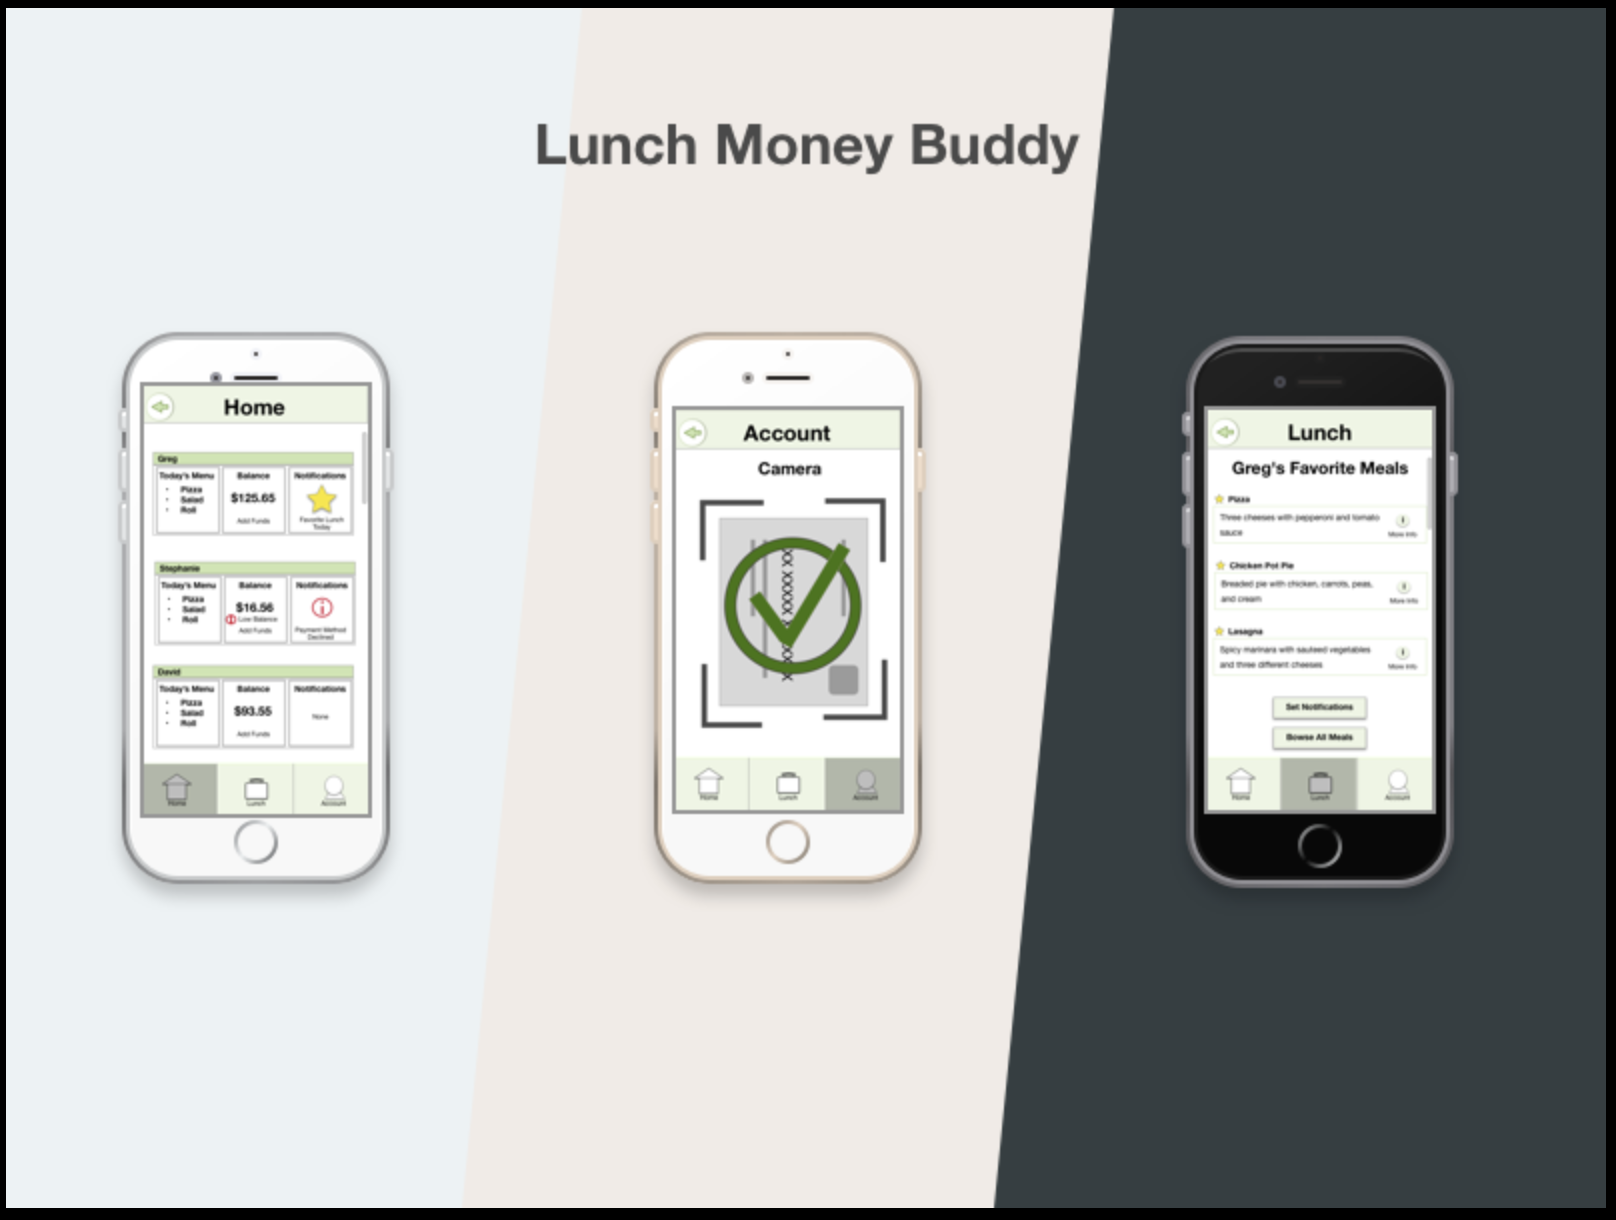 Lunch Money Buddy - Designed for parents or gaurdians to pay for and keep track of their kids' school lunches